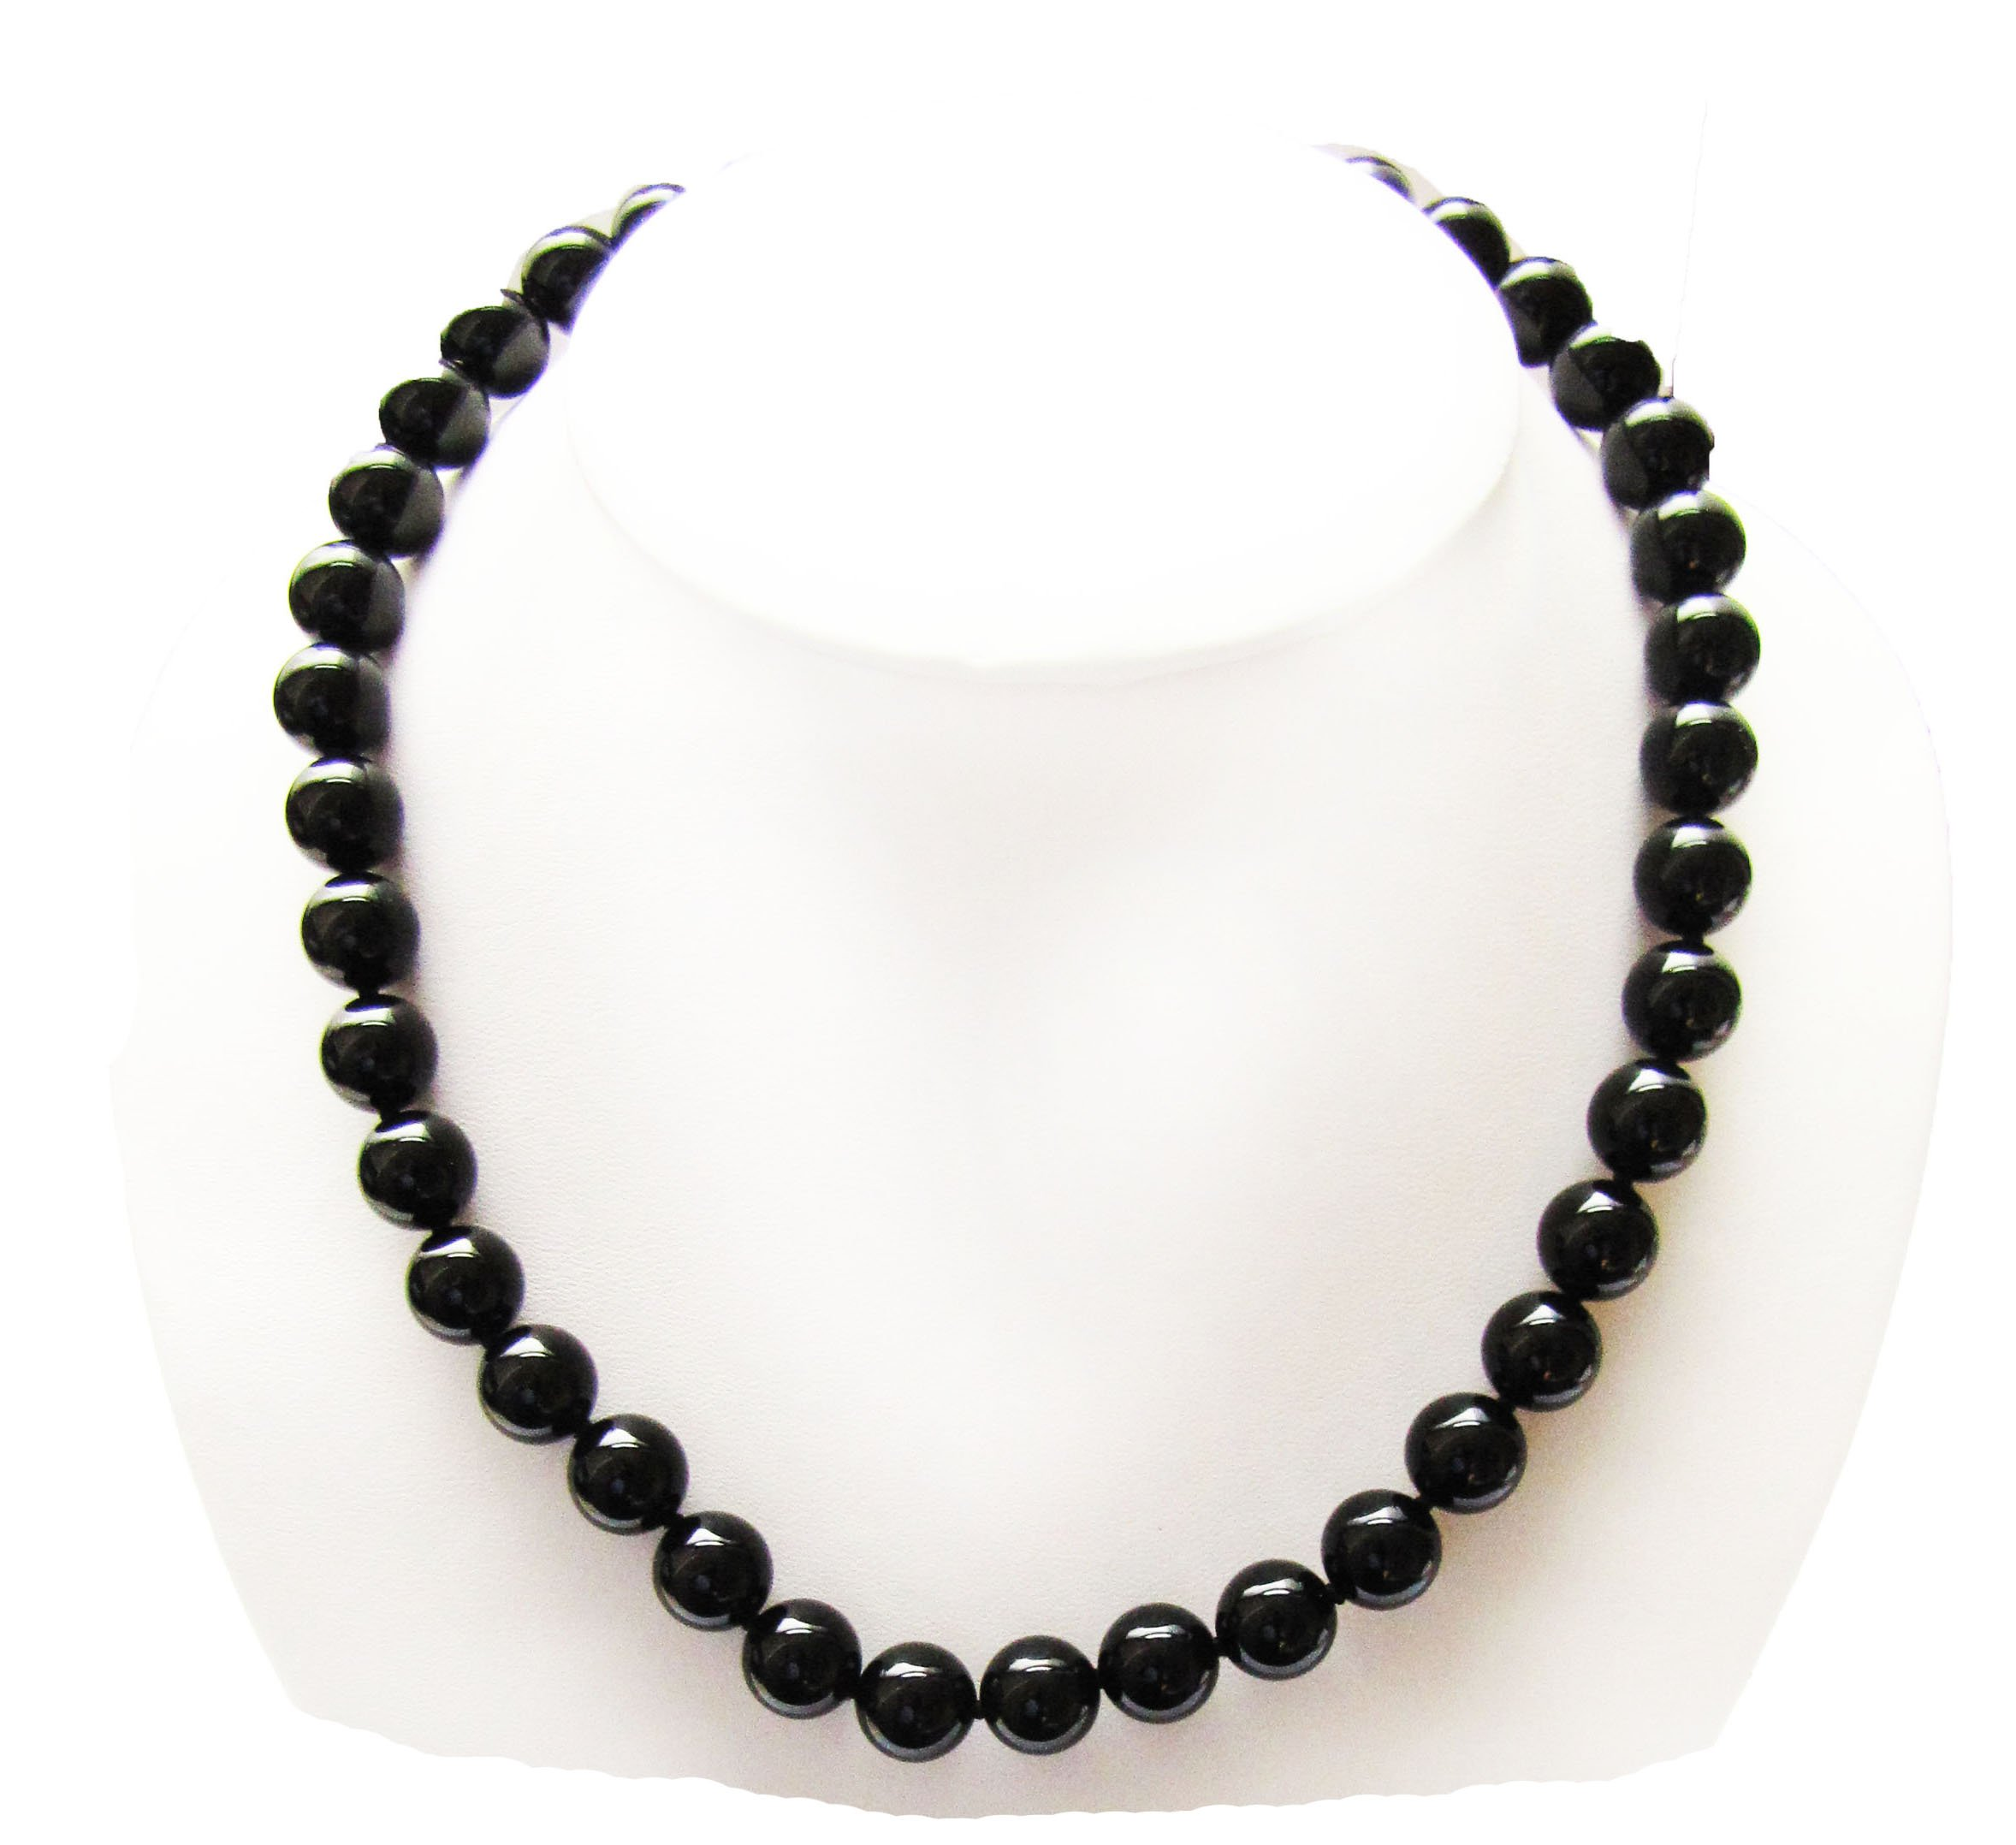 Genuine Black Onyx Agate 10mm Necklace, 17'', Top Quality, Sterling Silver Clasp